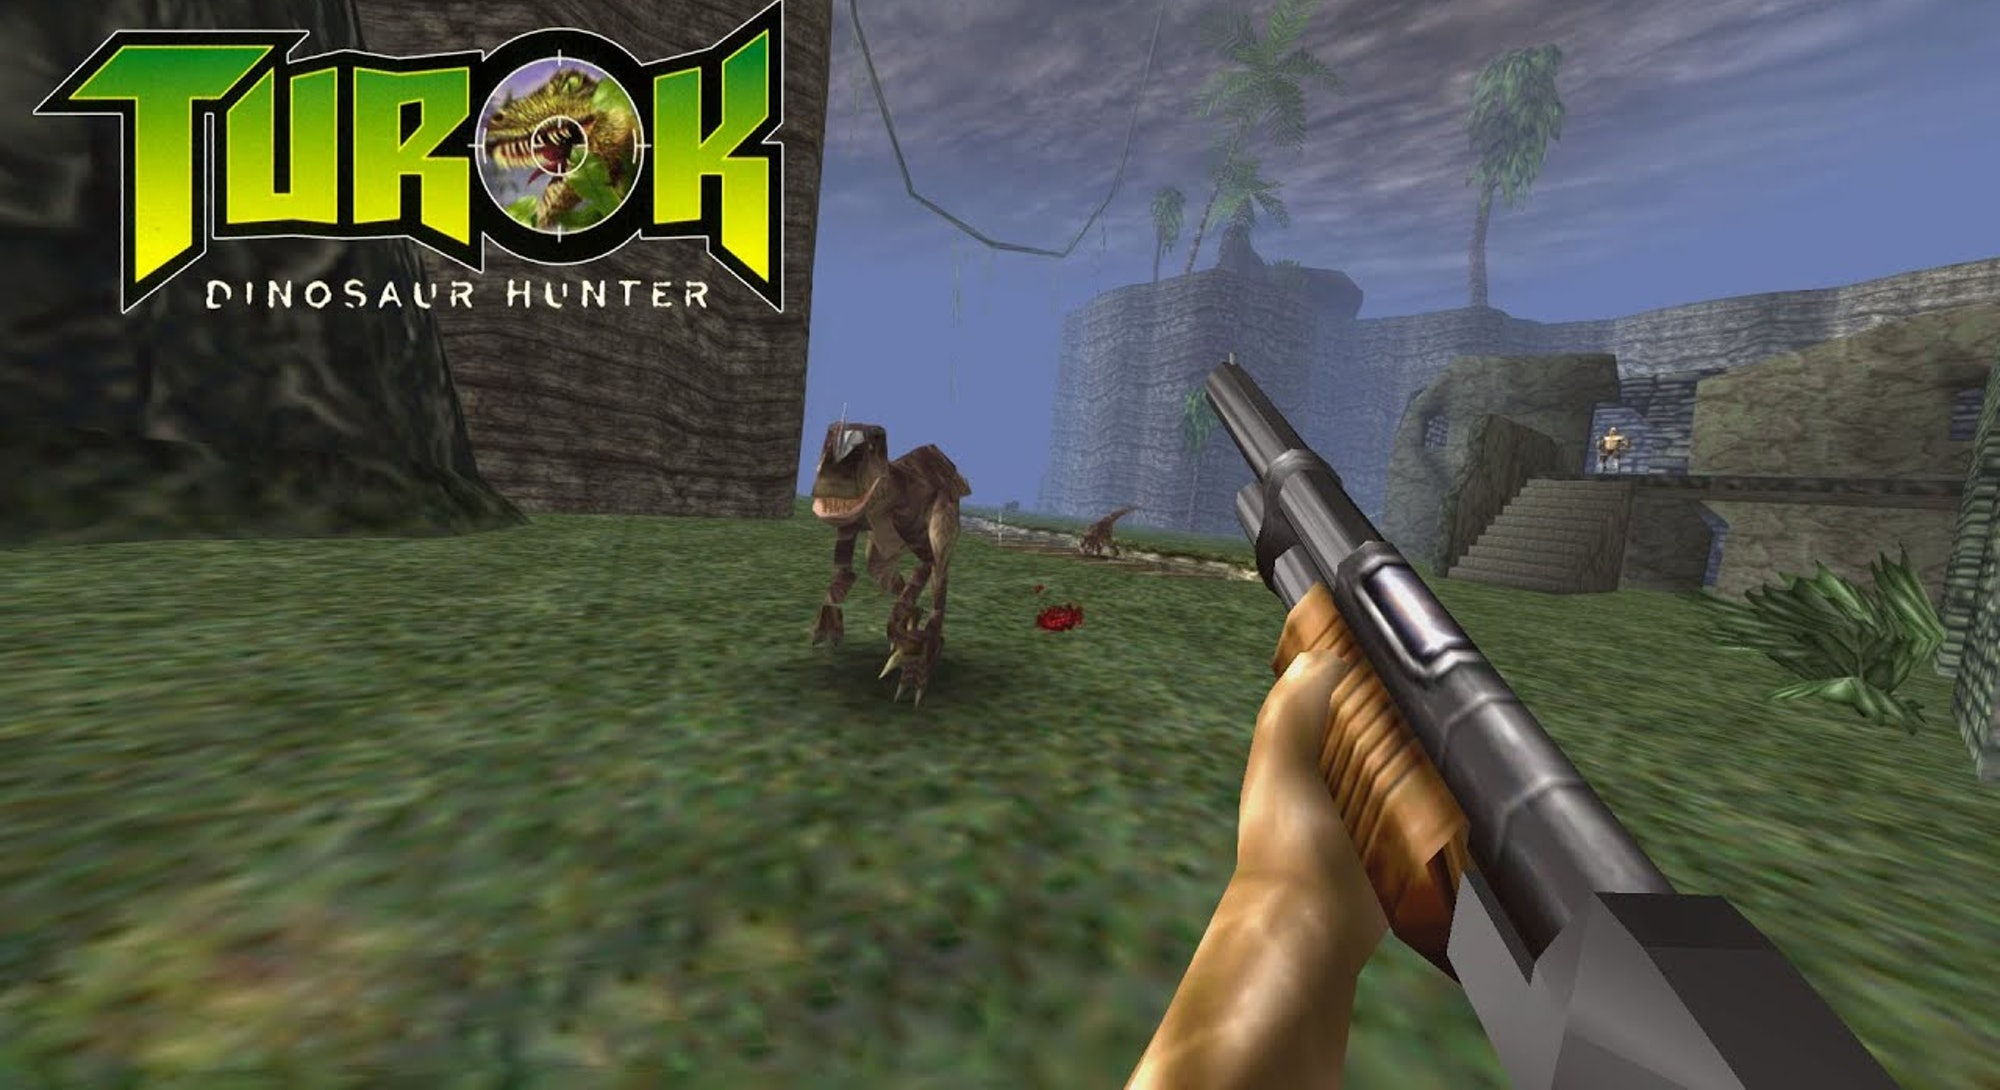 A screenshot from a game in the Turok franchise, a first-person shooter that was originally released on the Nintendo 64.